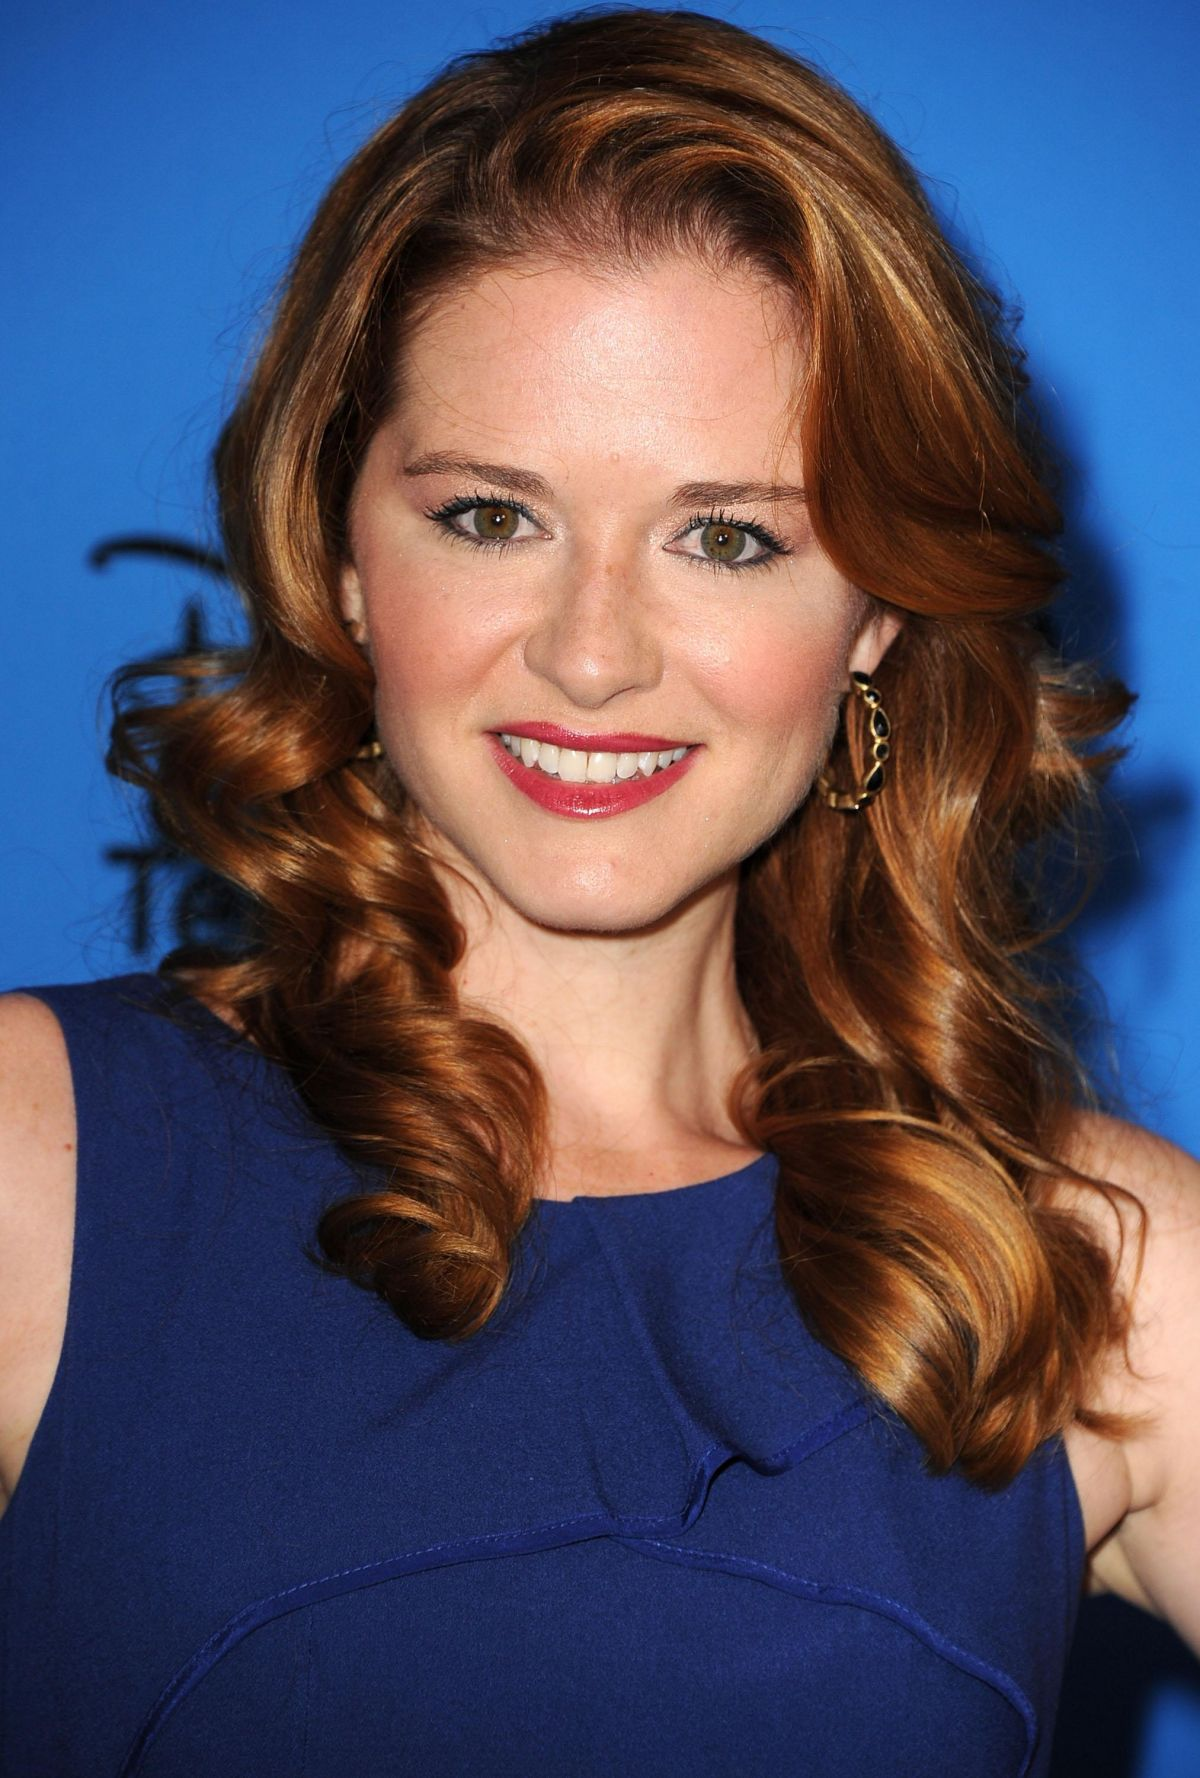 sarah drew instagramsarah drew husband, sarah drew wikipedia, sarah drew facts, sarah drew insta, sarah drew imdb, sarah drew maternity leave, sarah drew ellen pompeo, sarah drew instagram, sarah drew and jesse williams, sarah drew twitter, sarah drew, sarah drew private practice, sarah drew family, sarah drew grey's anatomy, sarah drew peter lanfer, sarah drew glee, sarah drew wiki, sarah drew height and weight, sarah drew facebook, sarah drew greys